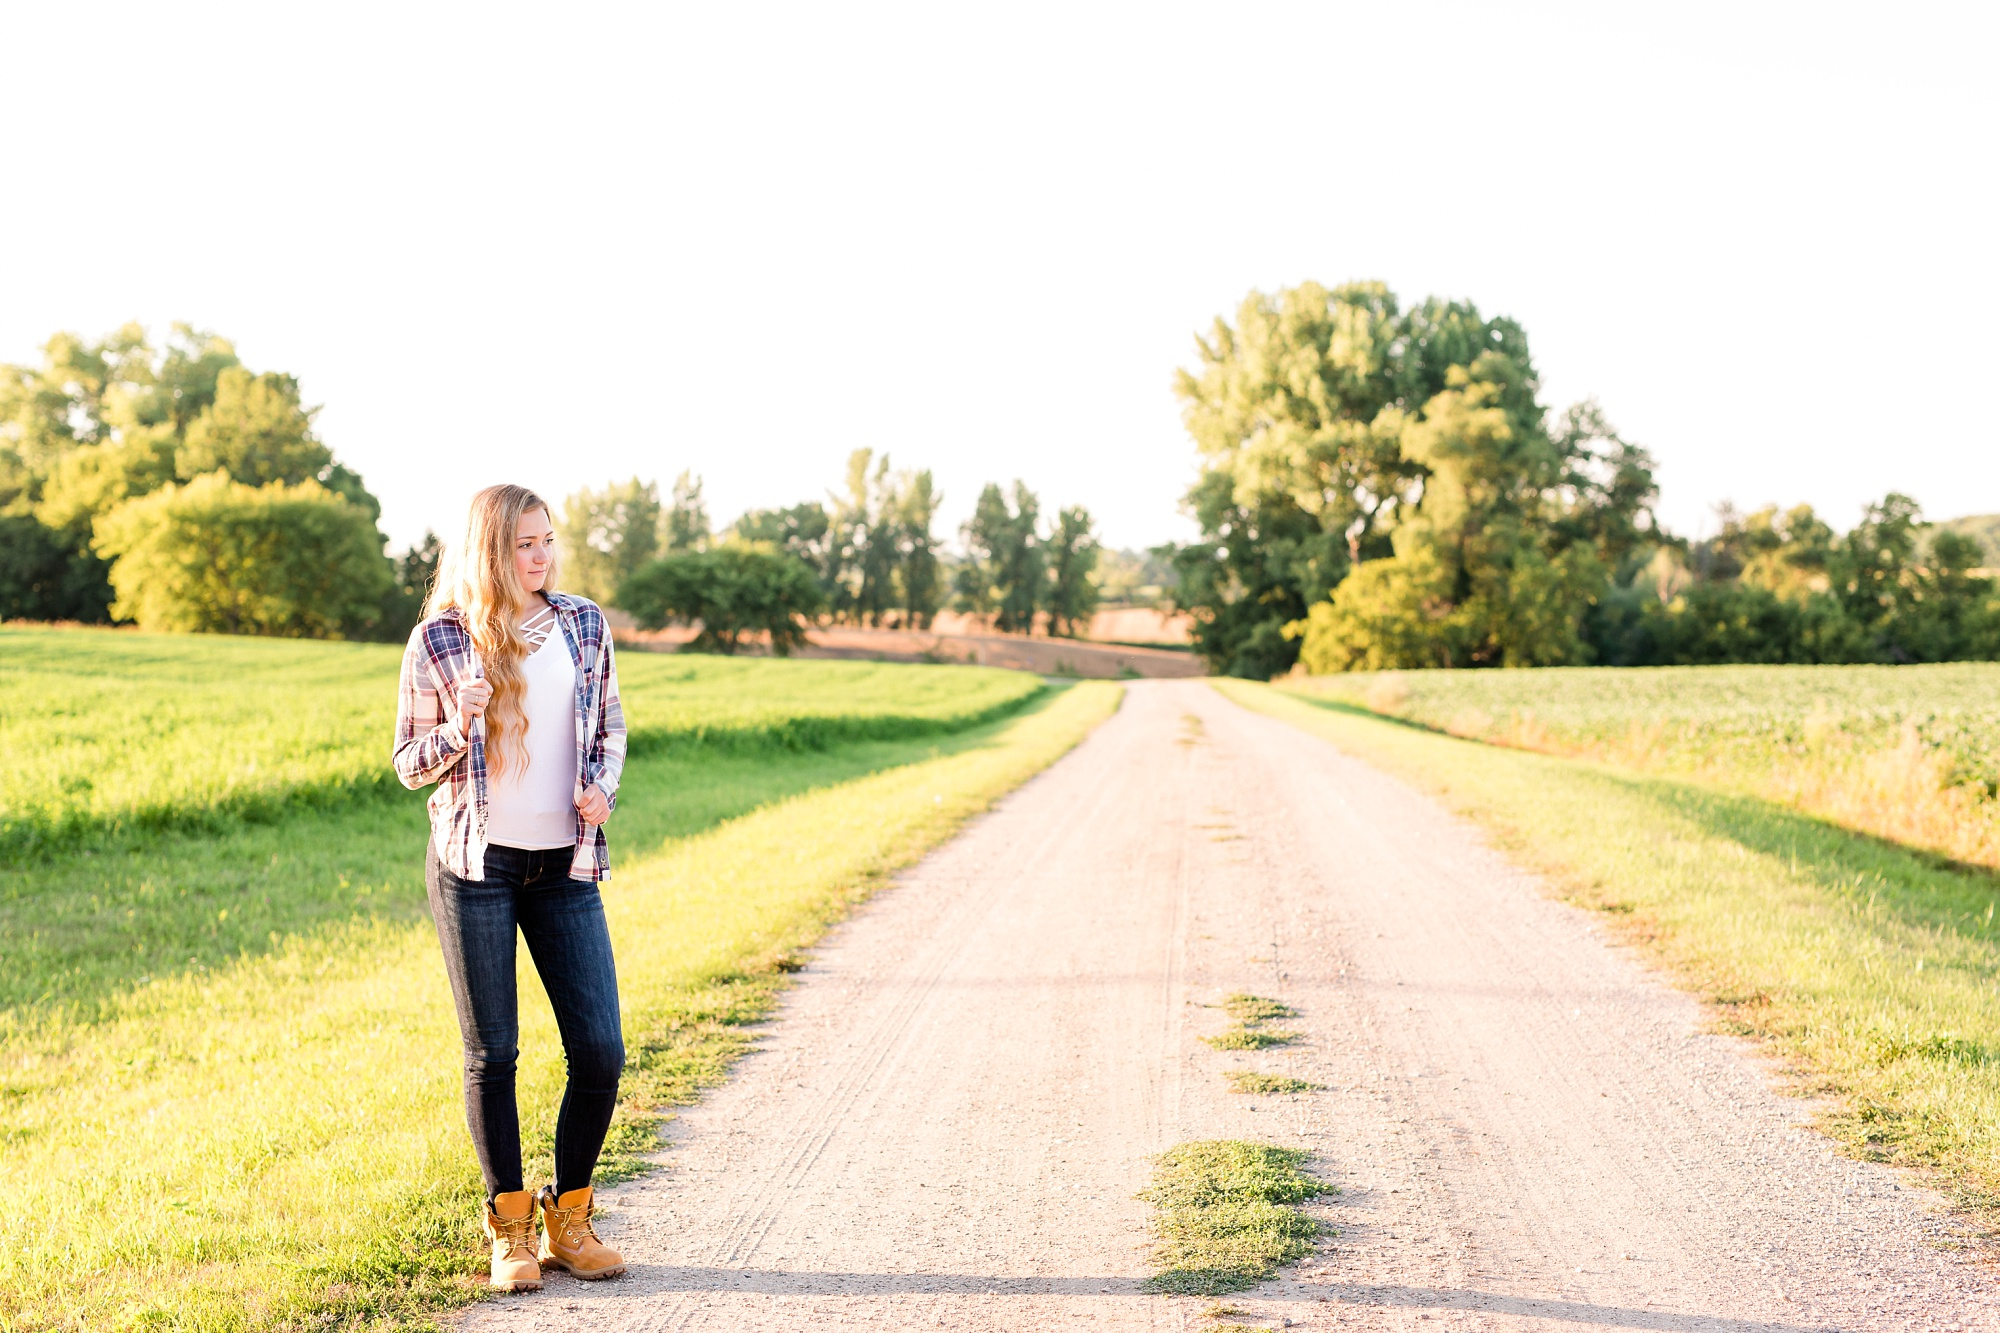 Country Styled High School Senior Pictures on a Farm and Little Cormorant Lake in Minnesota by Amber Langerud with Gravel Road